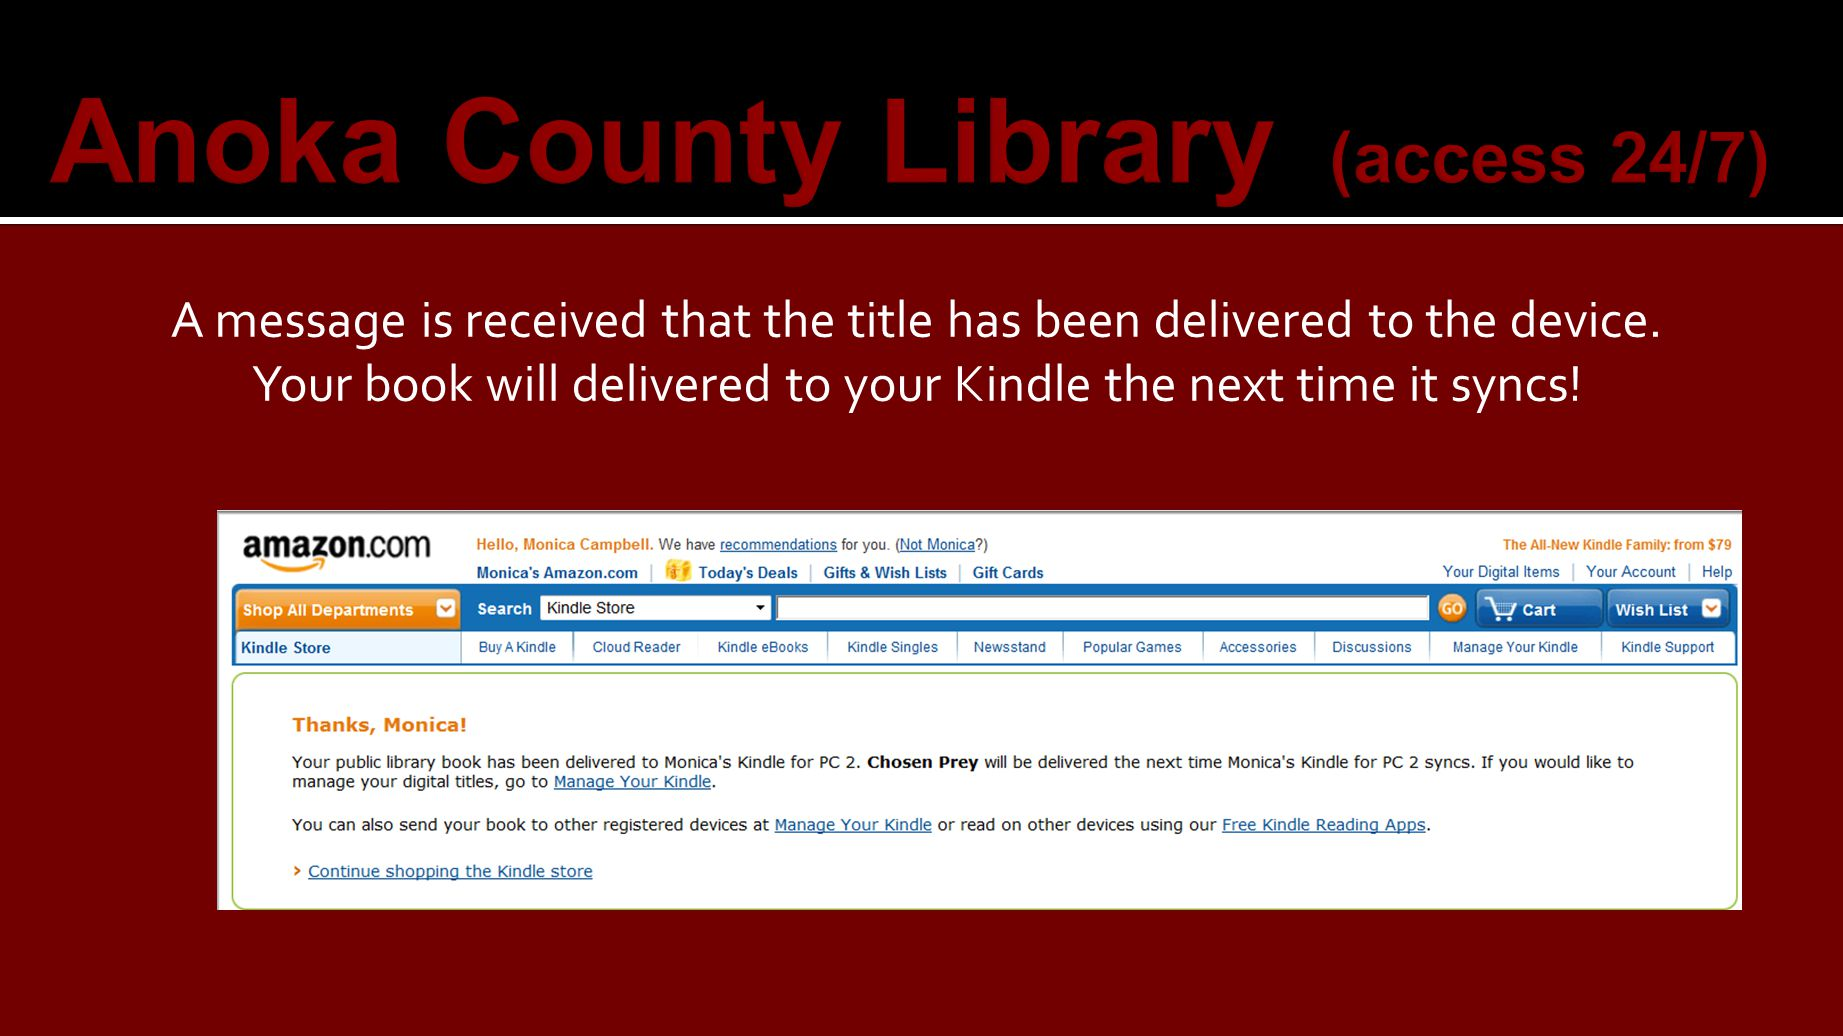 Anoka County Library (access 24/7) A message is received that the title has been delivered to the device.